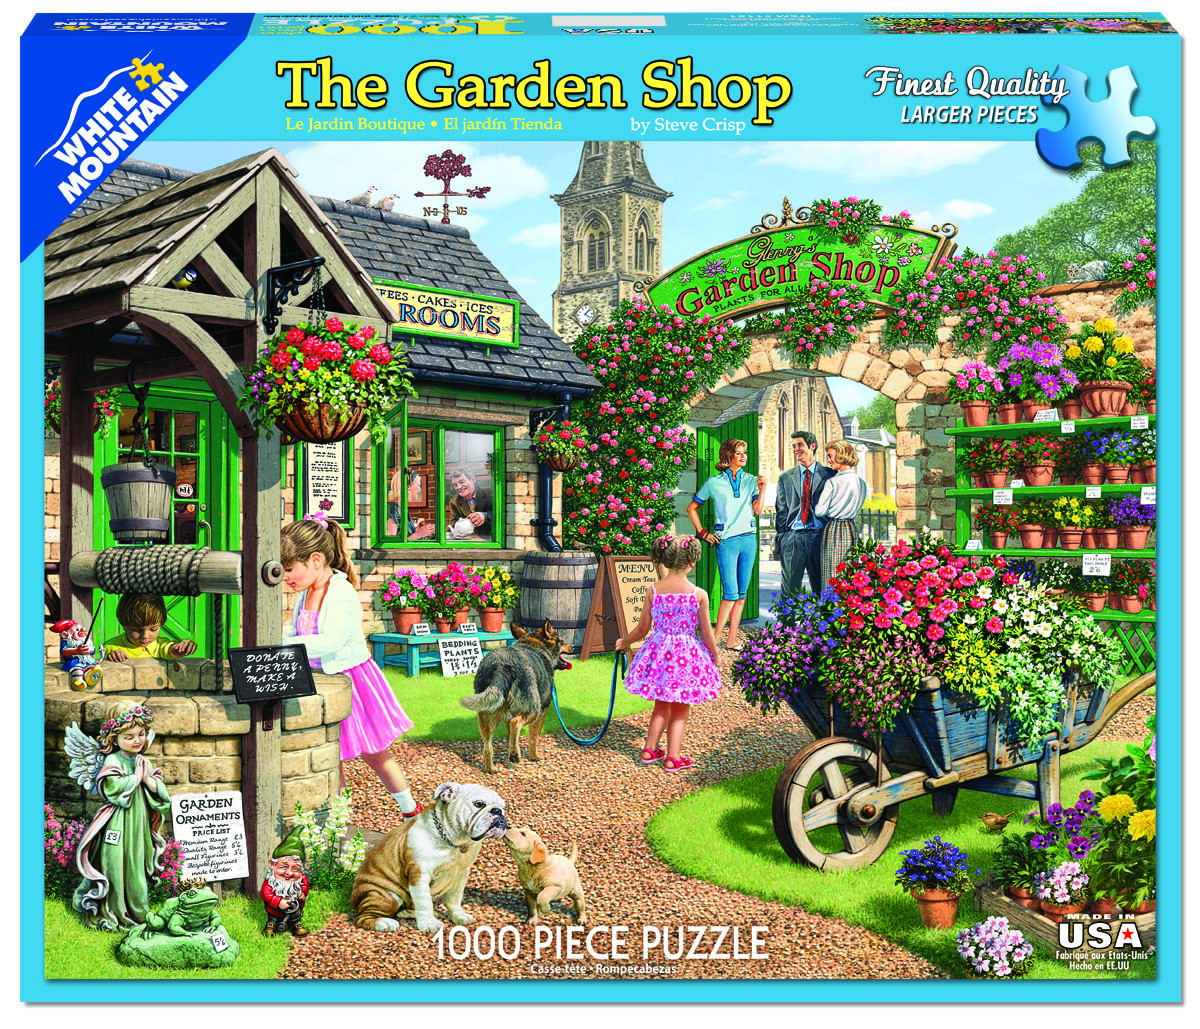 The Garden Shop Flowers Jigsaw Puzzle